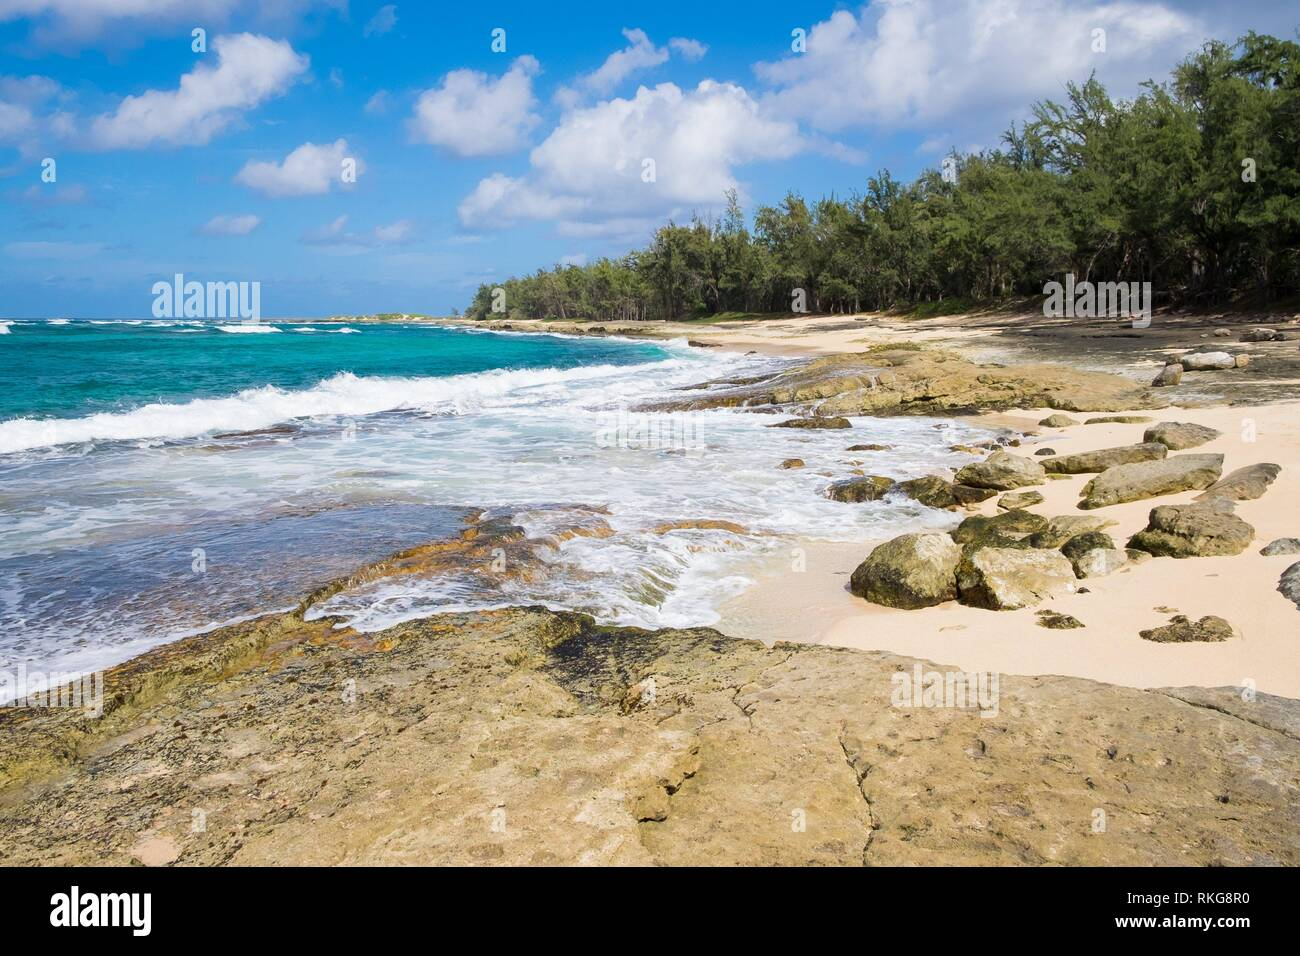 Beach and Pacific Ocean at Turtle Bay Oahu Hawaii. - Stock Image